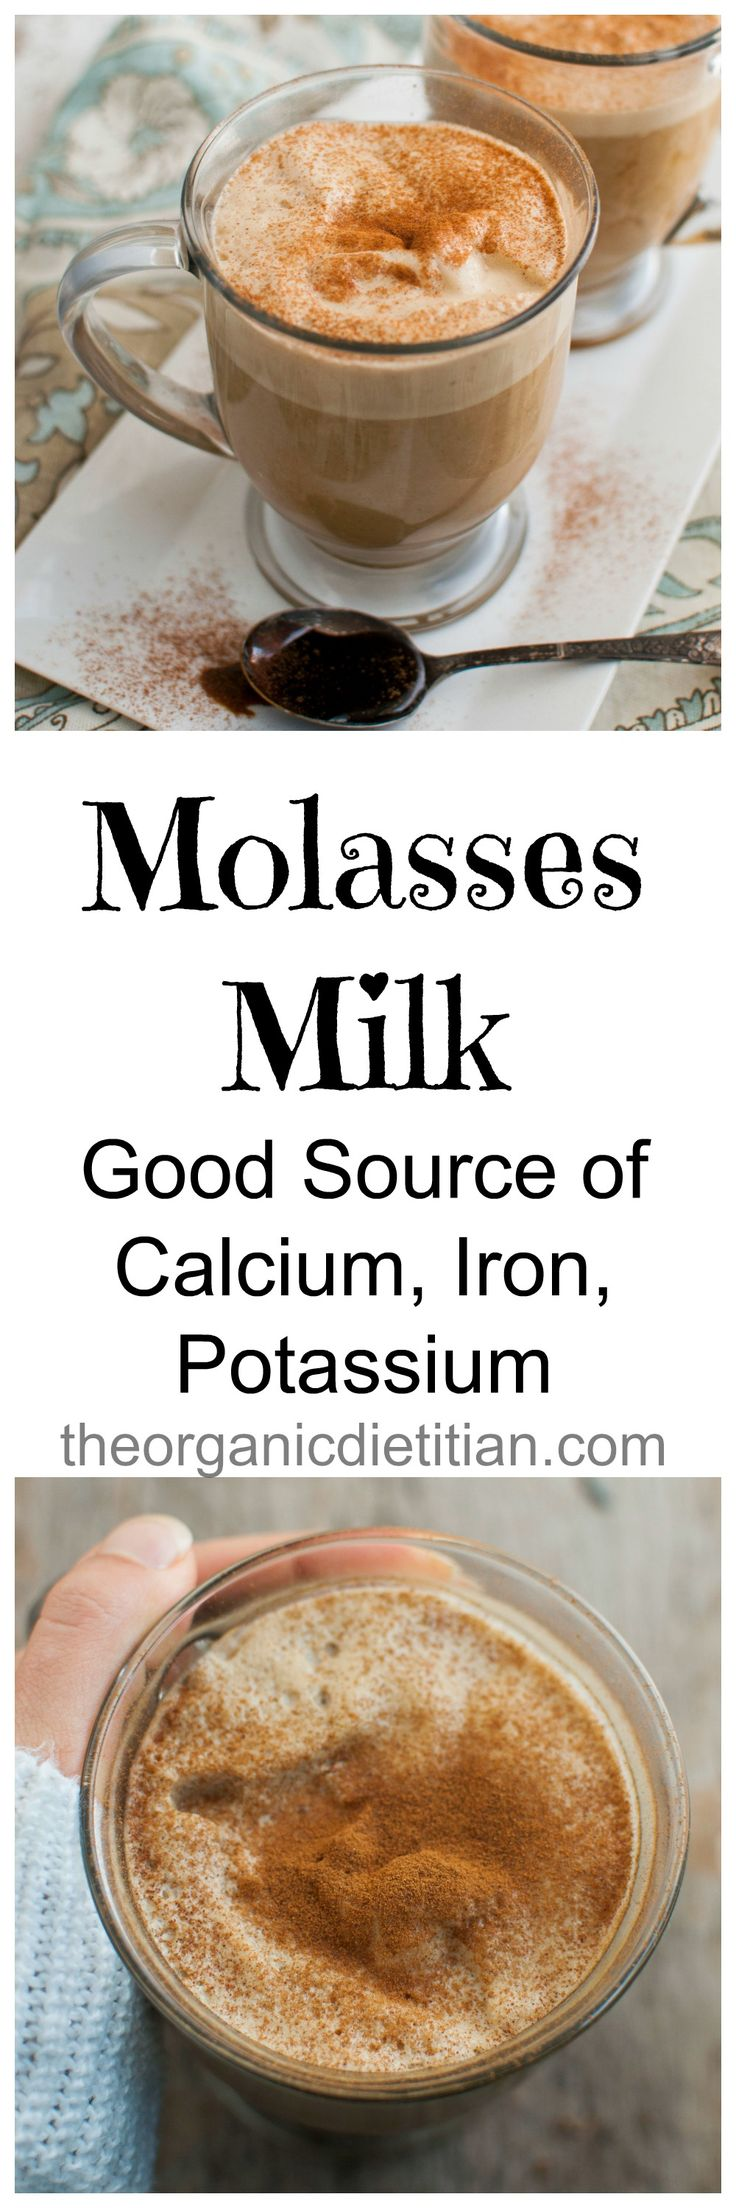 Molasses Milk is a great way to get calcium, iron, potassium and antioxidants.  Serve warm or cold.  And, it sounds yummy